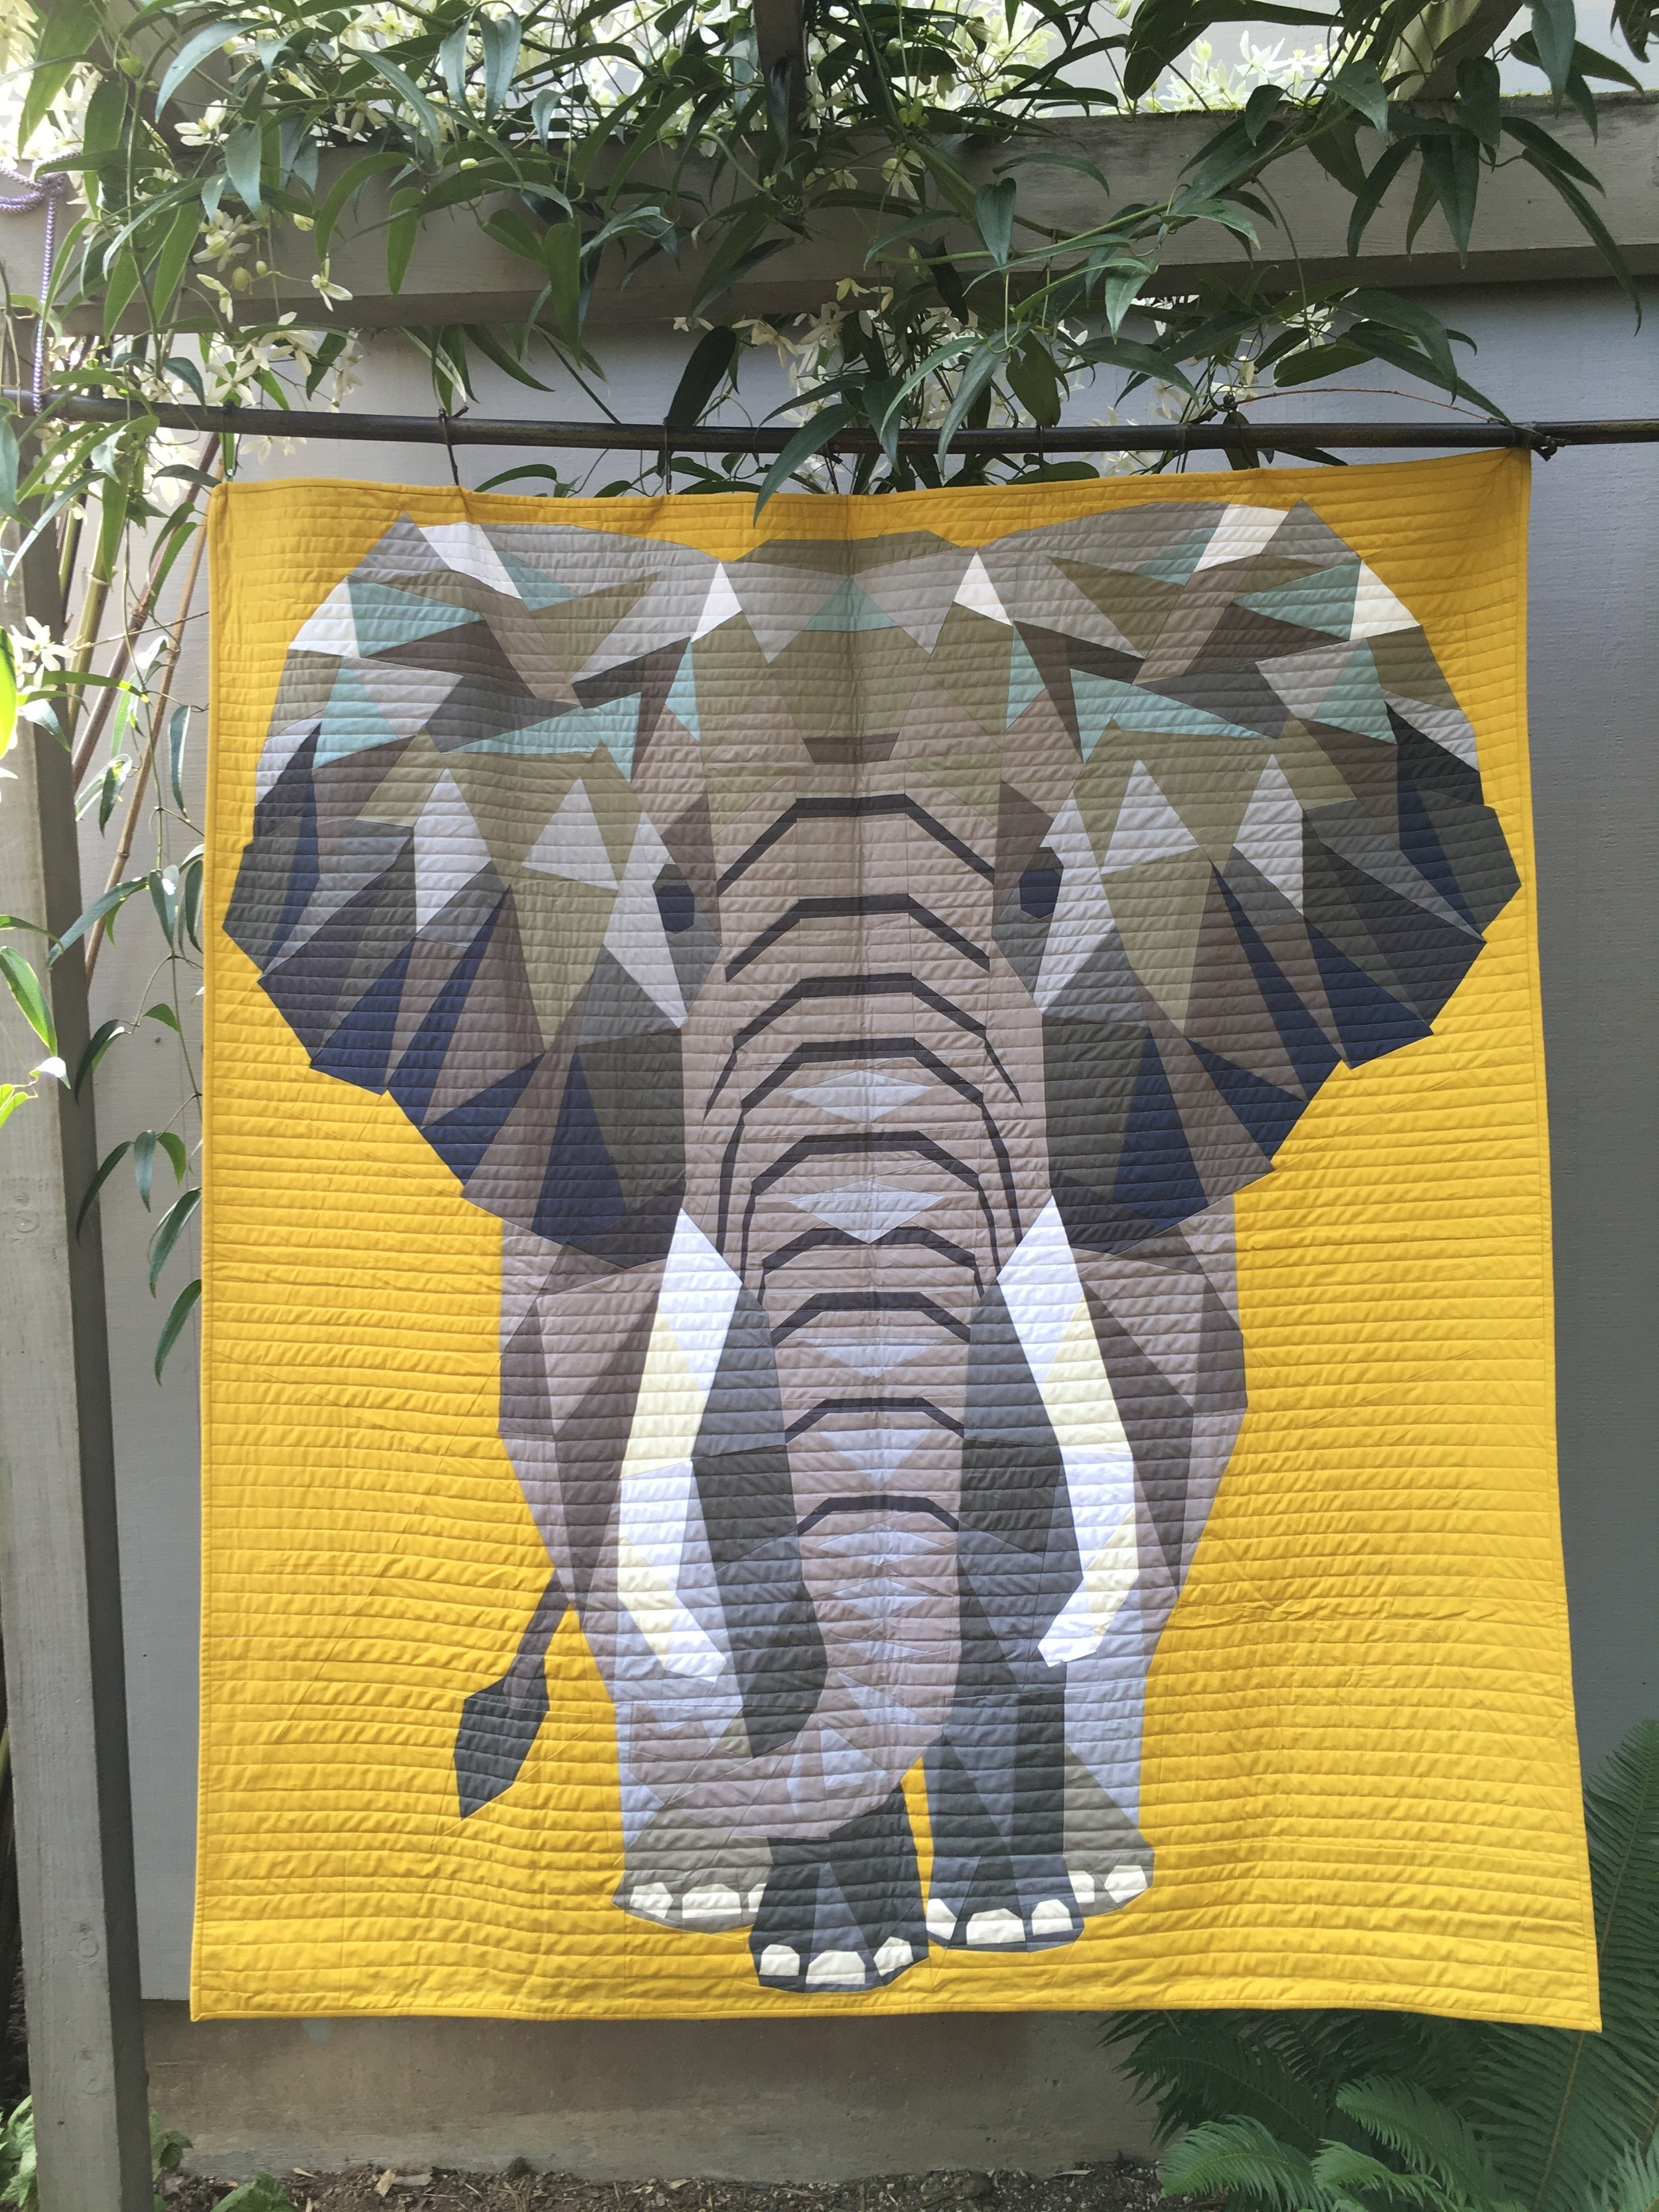 The original Elephant Abstractions quilt